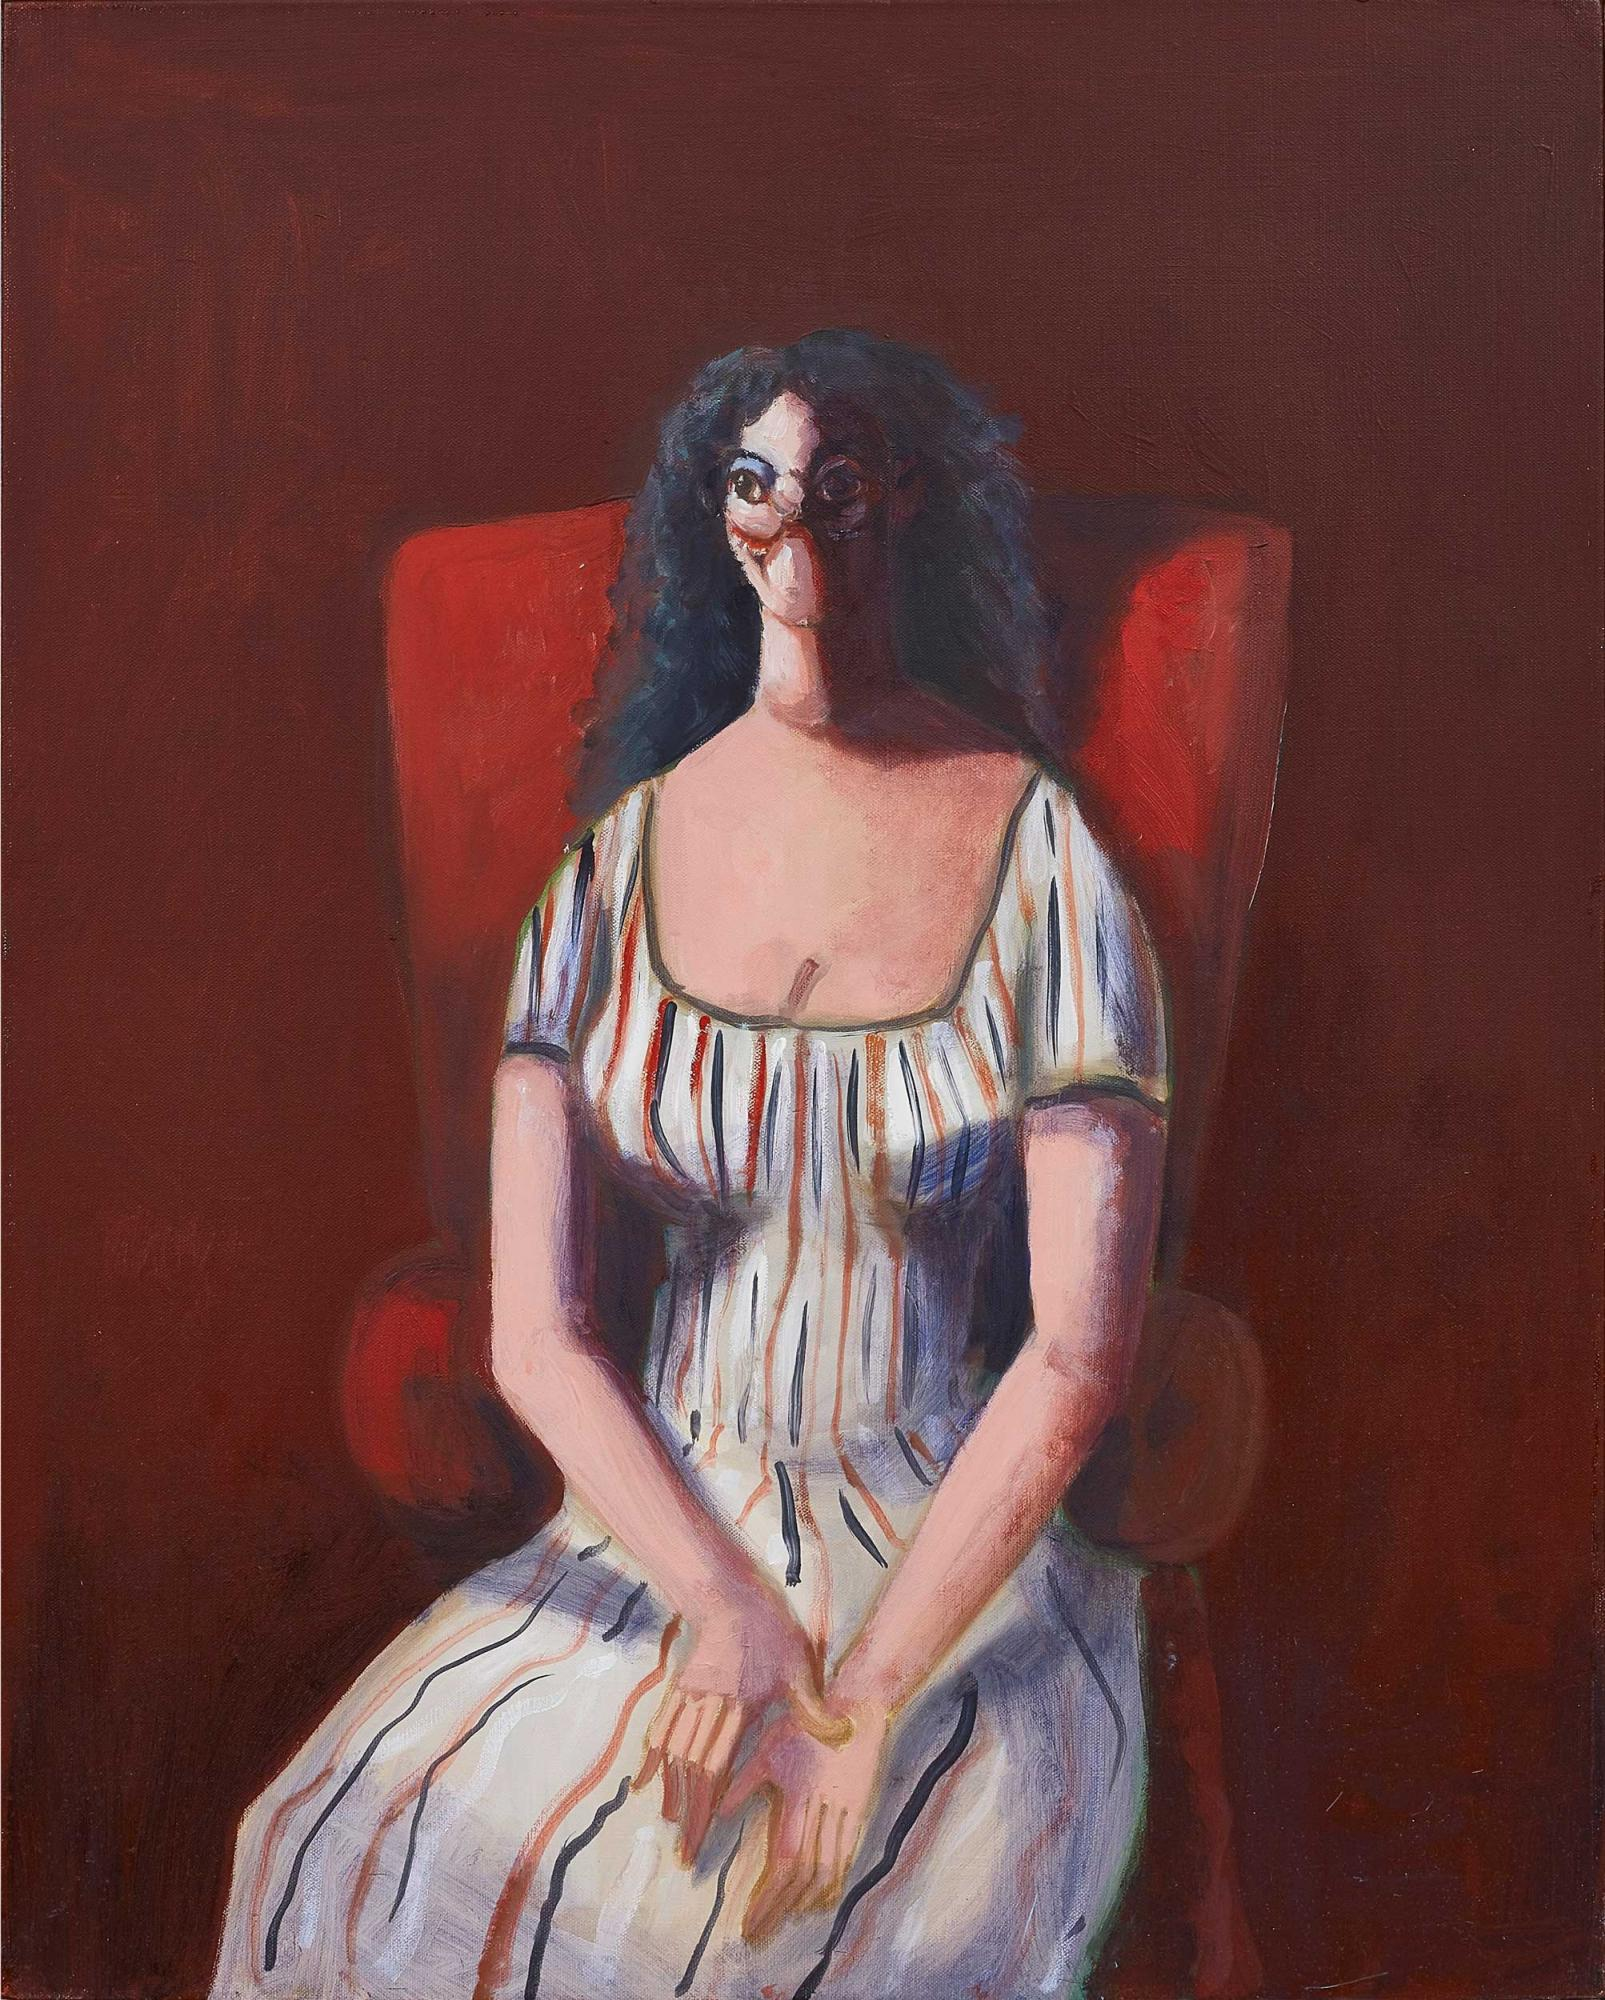 George-Condo_Woman-on-Red-Chair.jpg